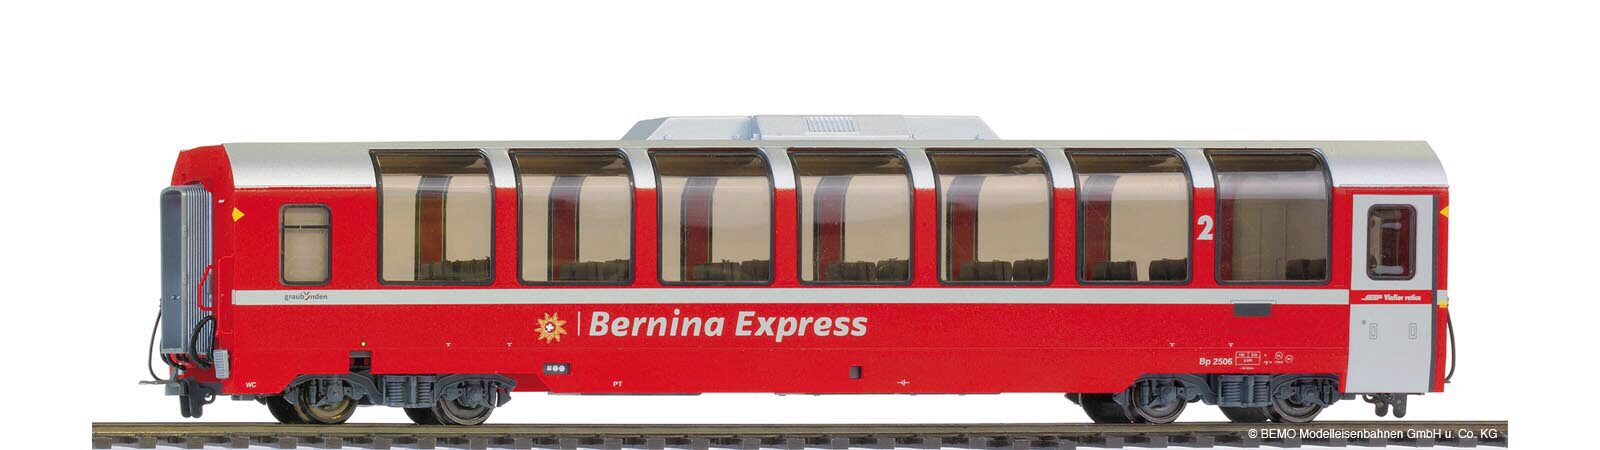 Bemo 3294146 RhB Bp 2506 Panoramawagen Bernina-Express